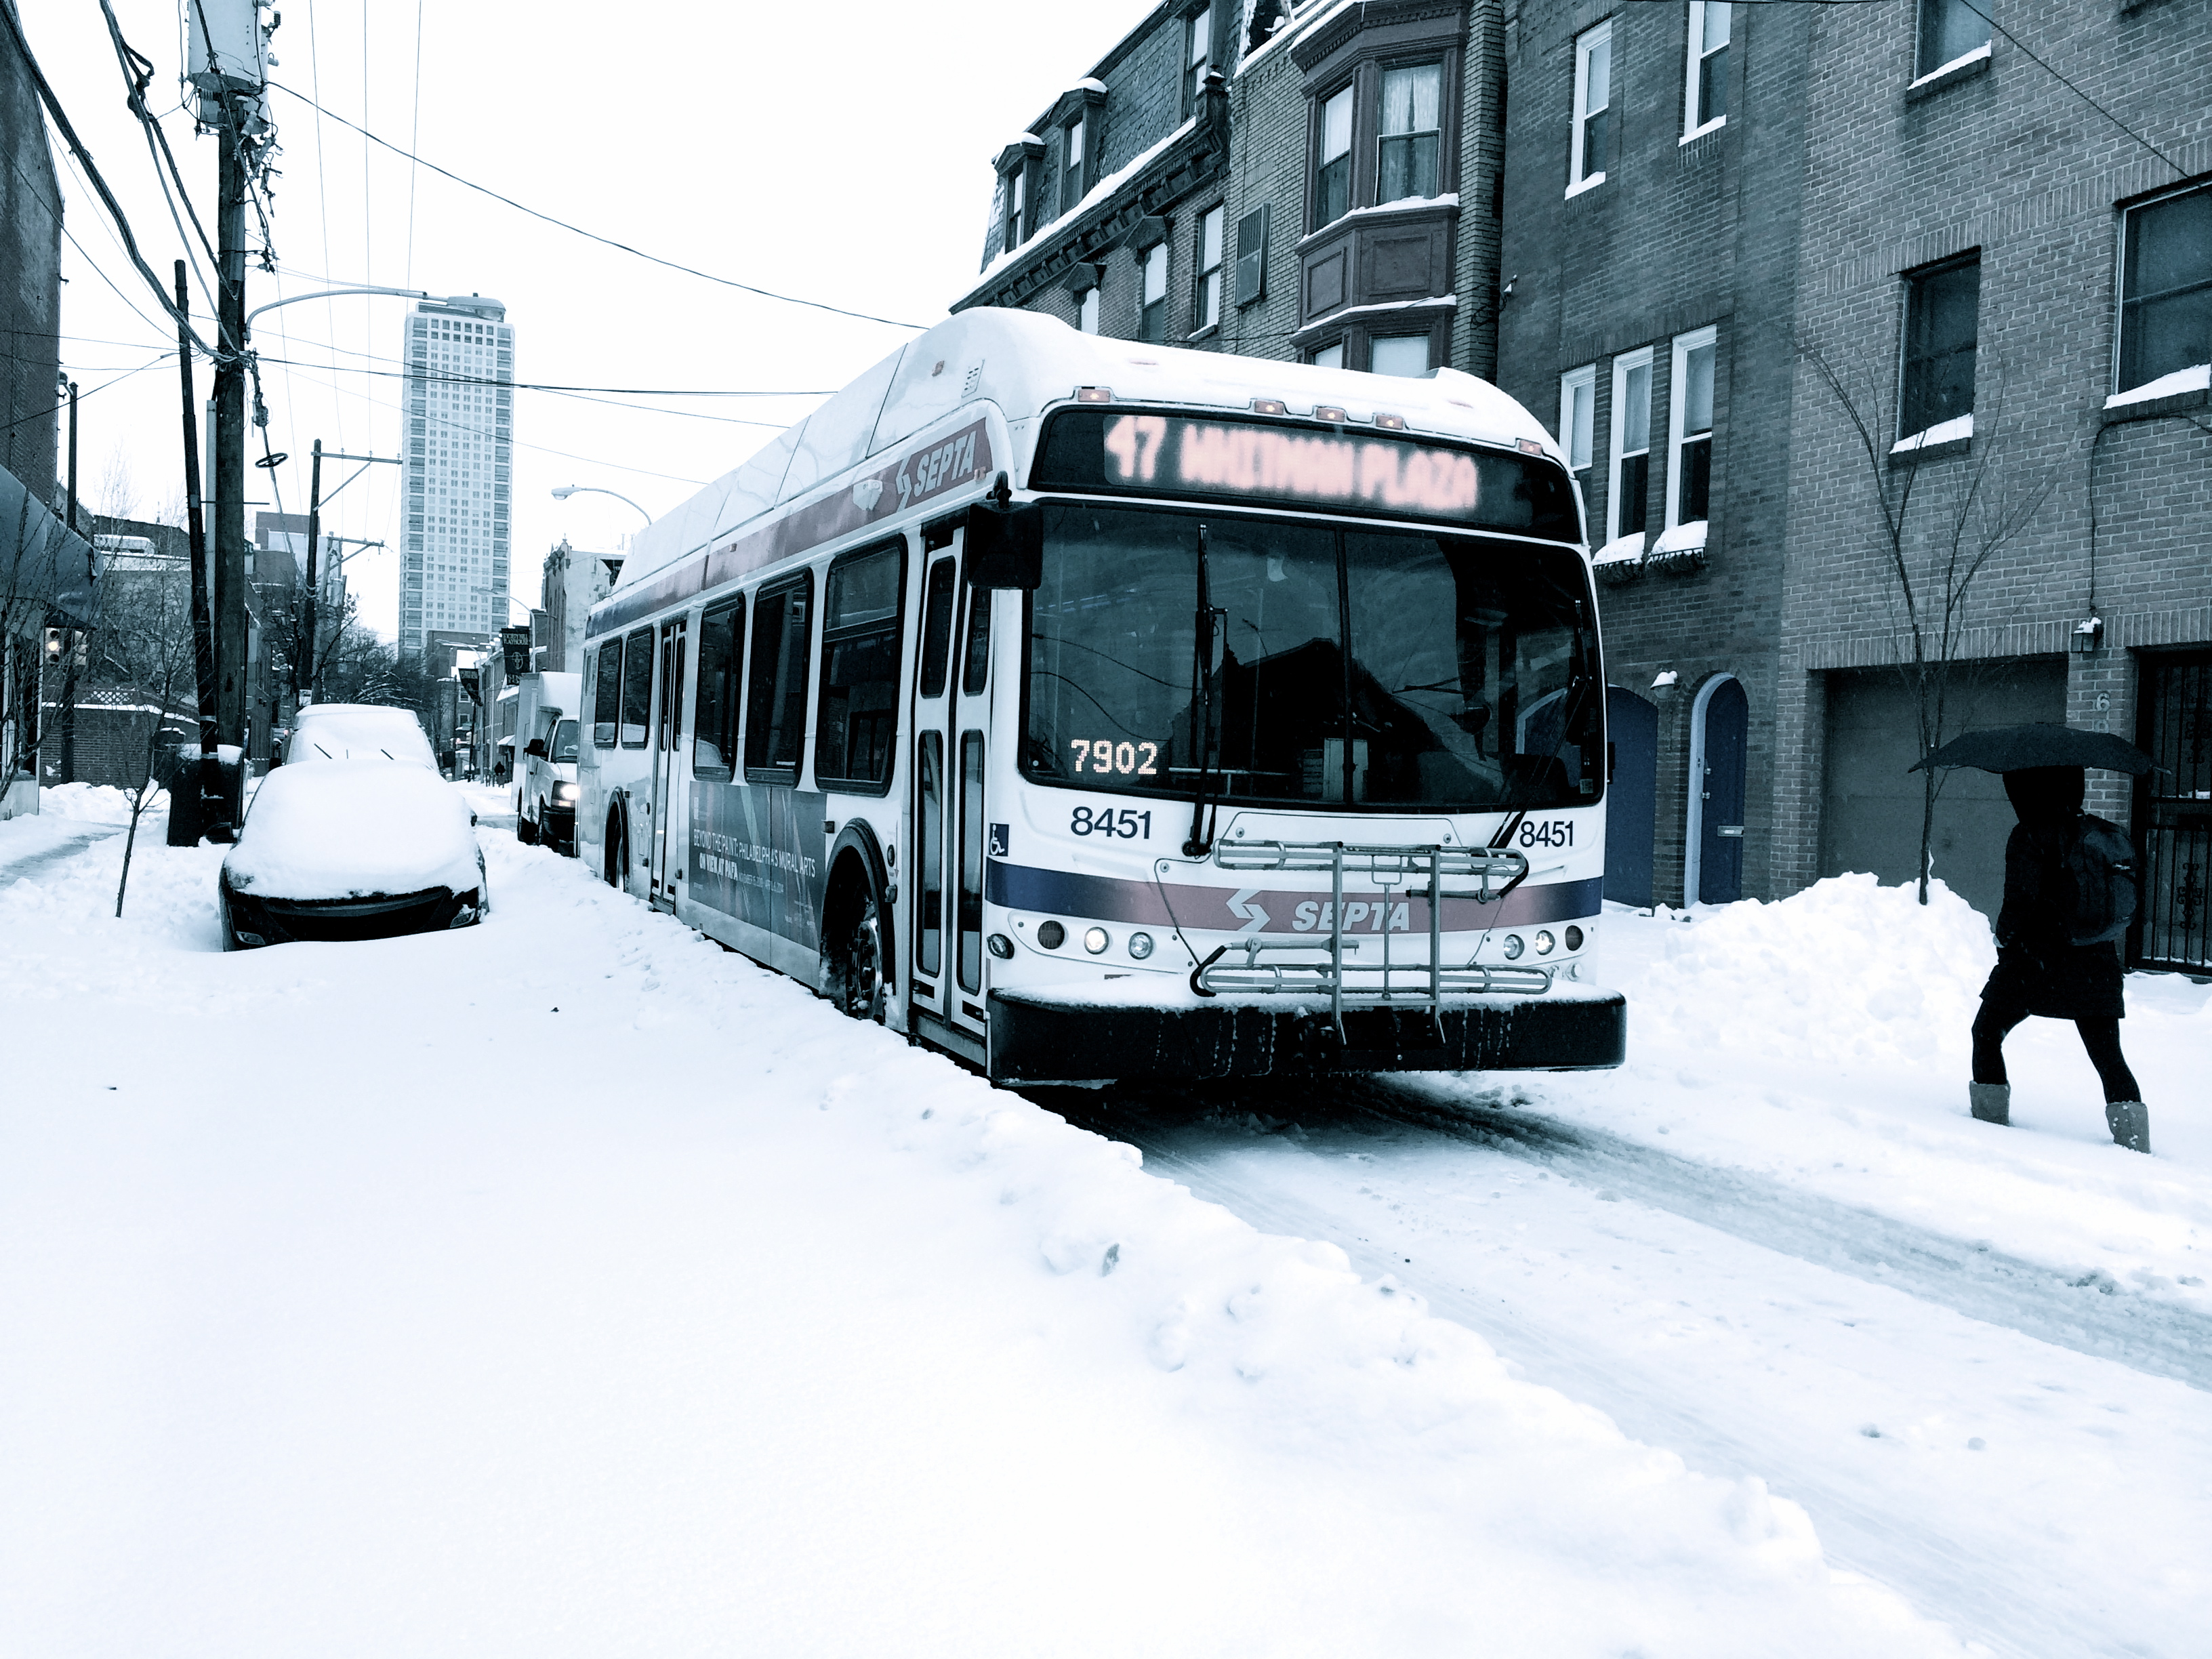 Route 47 in snow, February 13, 2014